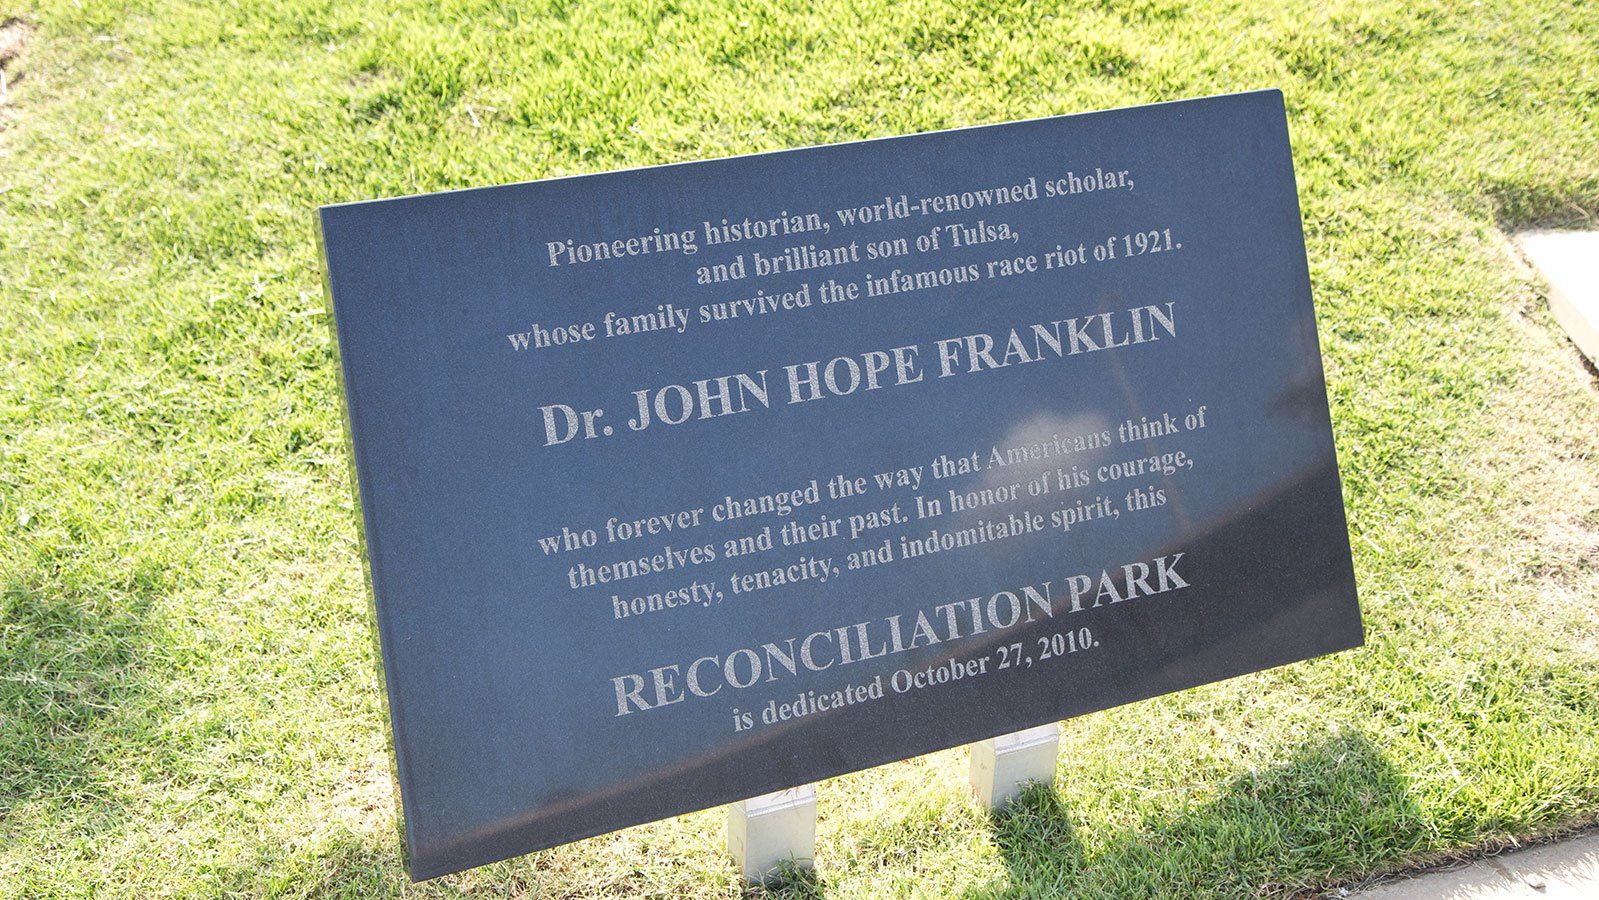 John Hope Franklin Reconciliation Park